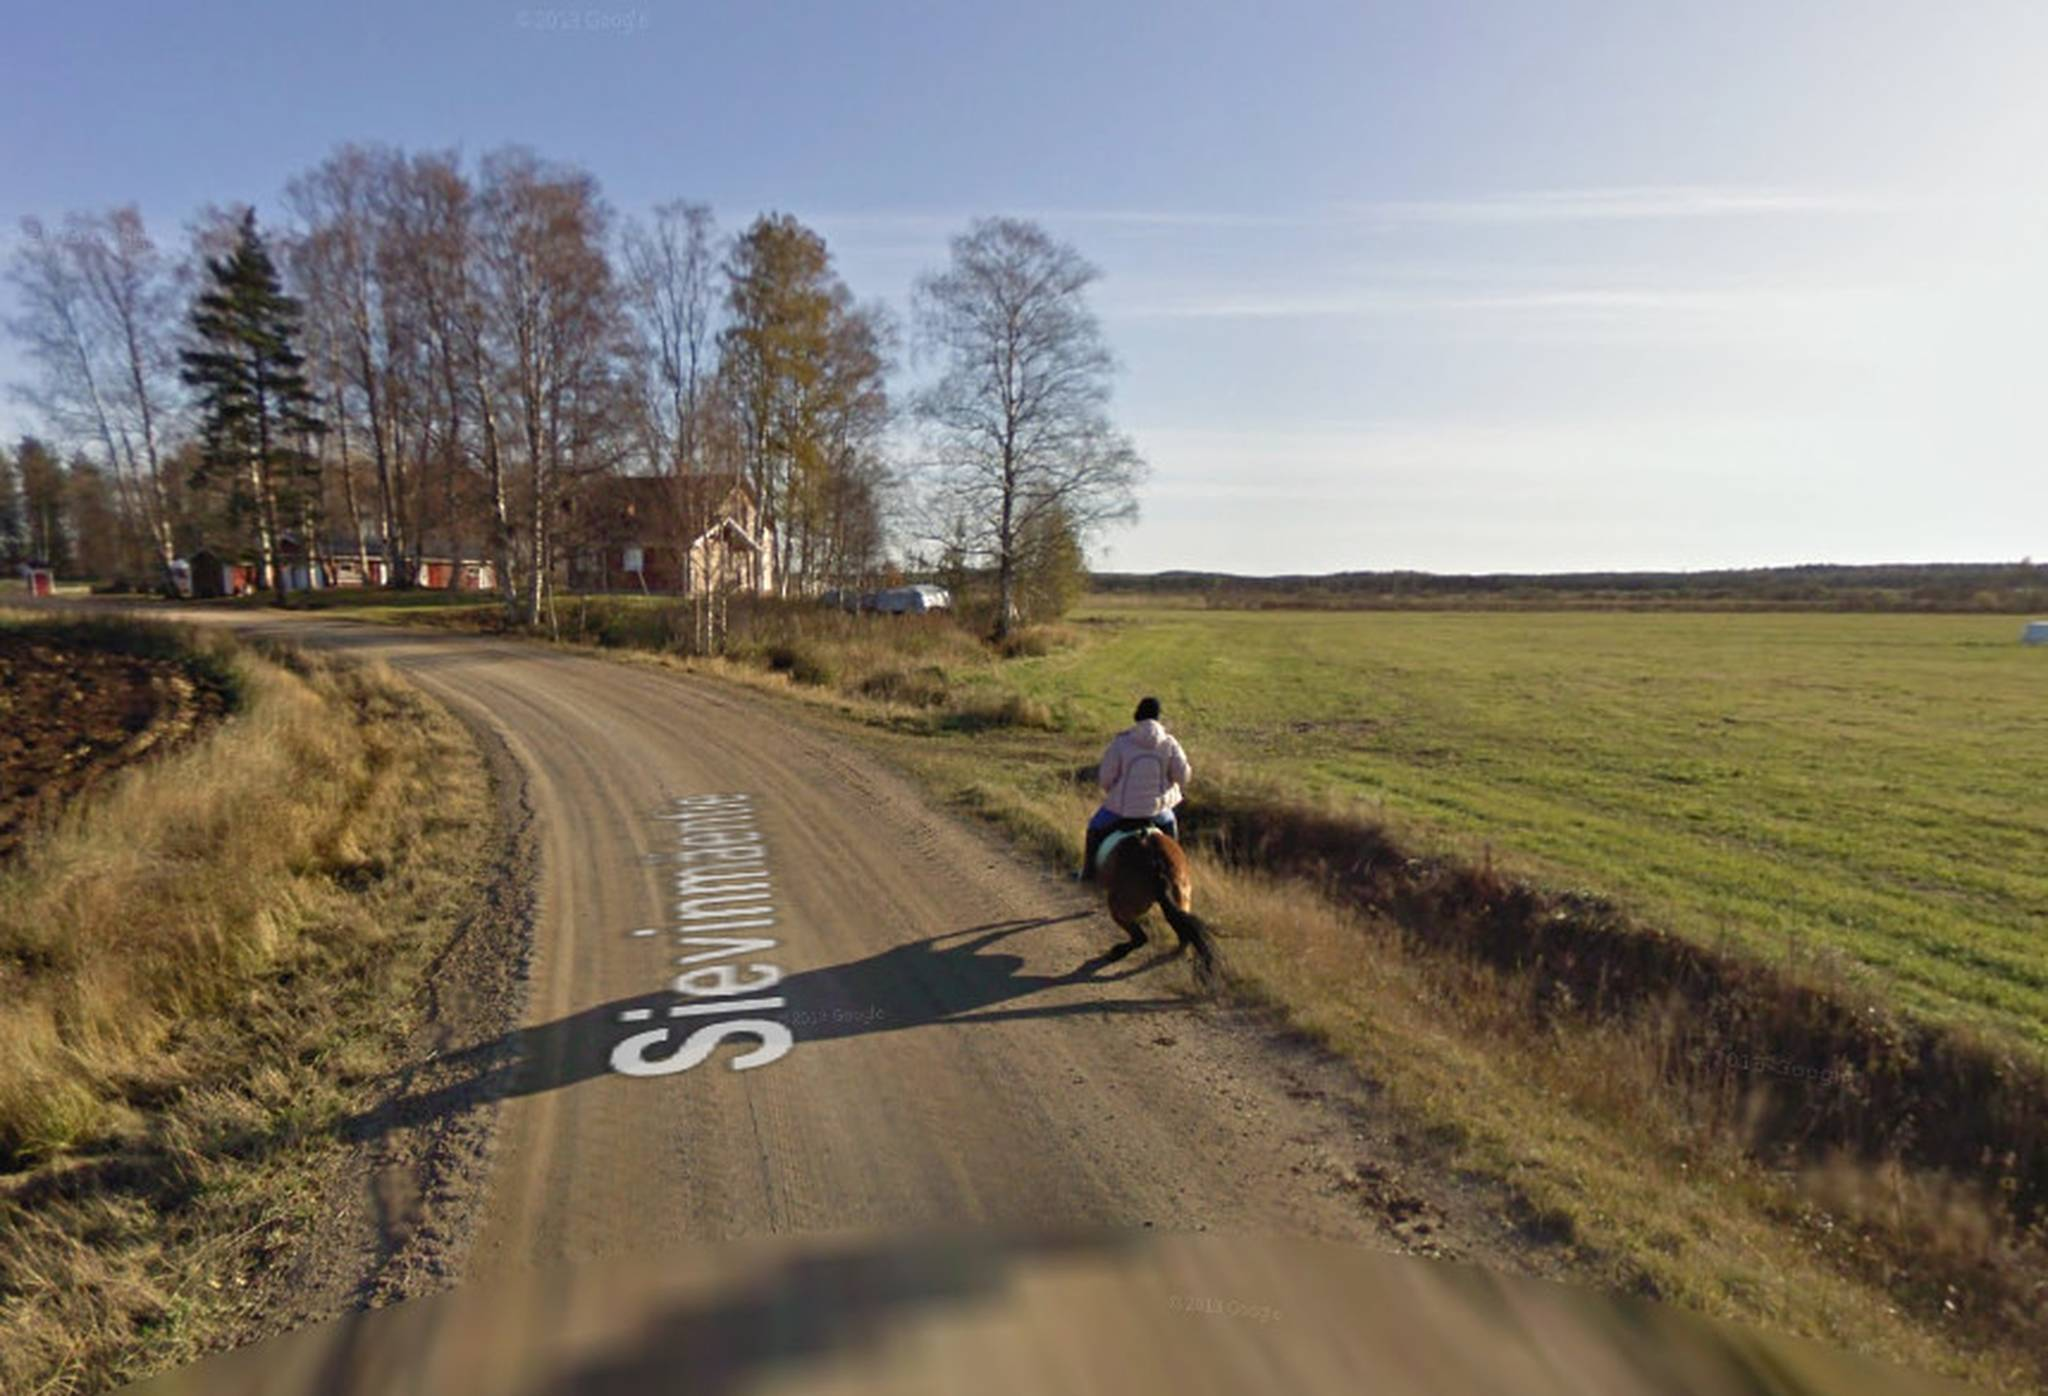 google street view car scares horse